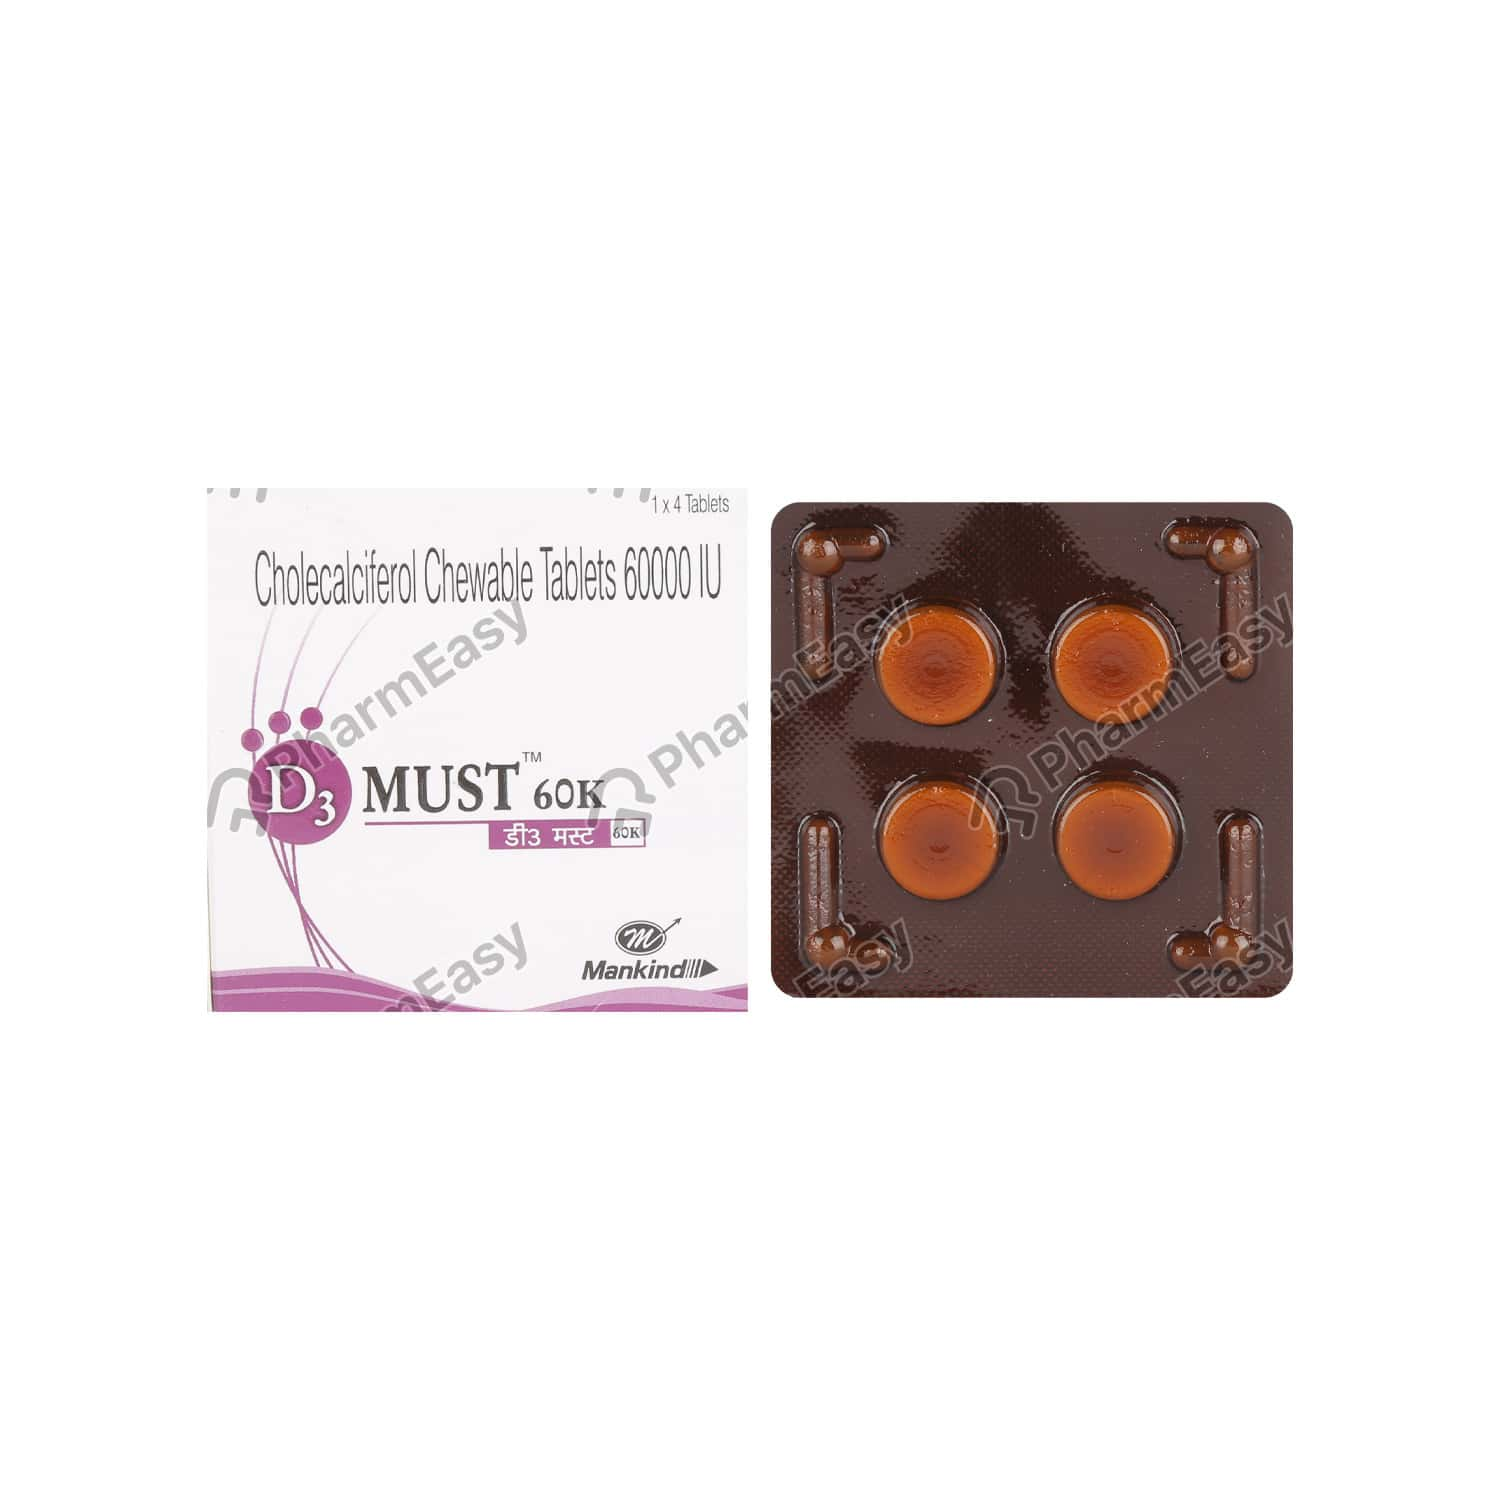 D3 Must 60k Orange Flavour Sugar Free Tablet 4's